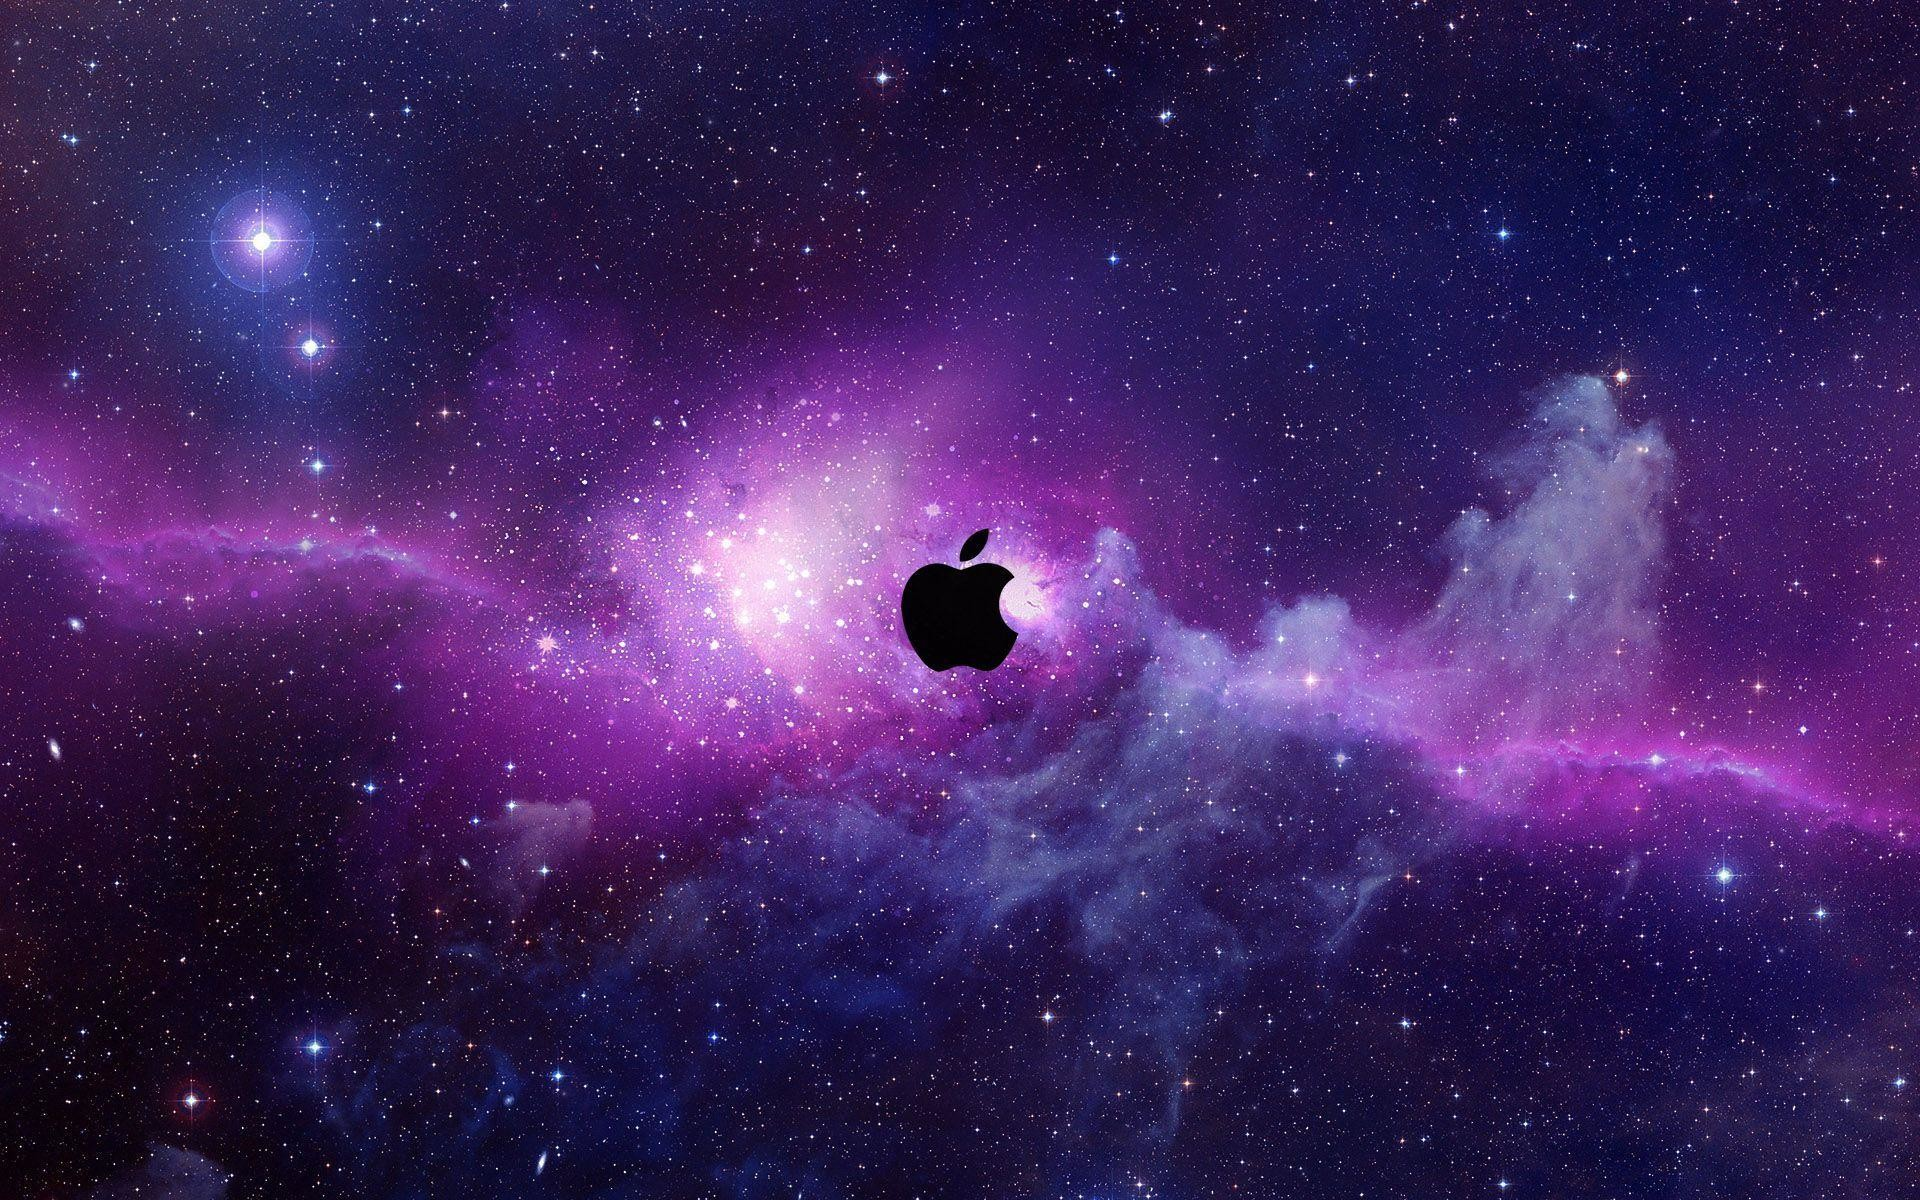 1920x1200 Cool Mac Backgrounds, wallpaper, Cool Mac Backgrounds hd wallpaper .